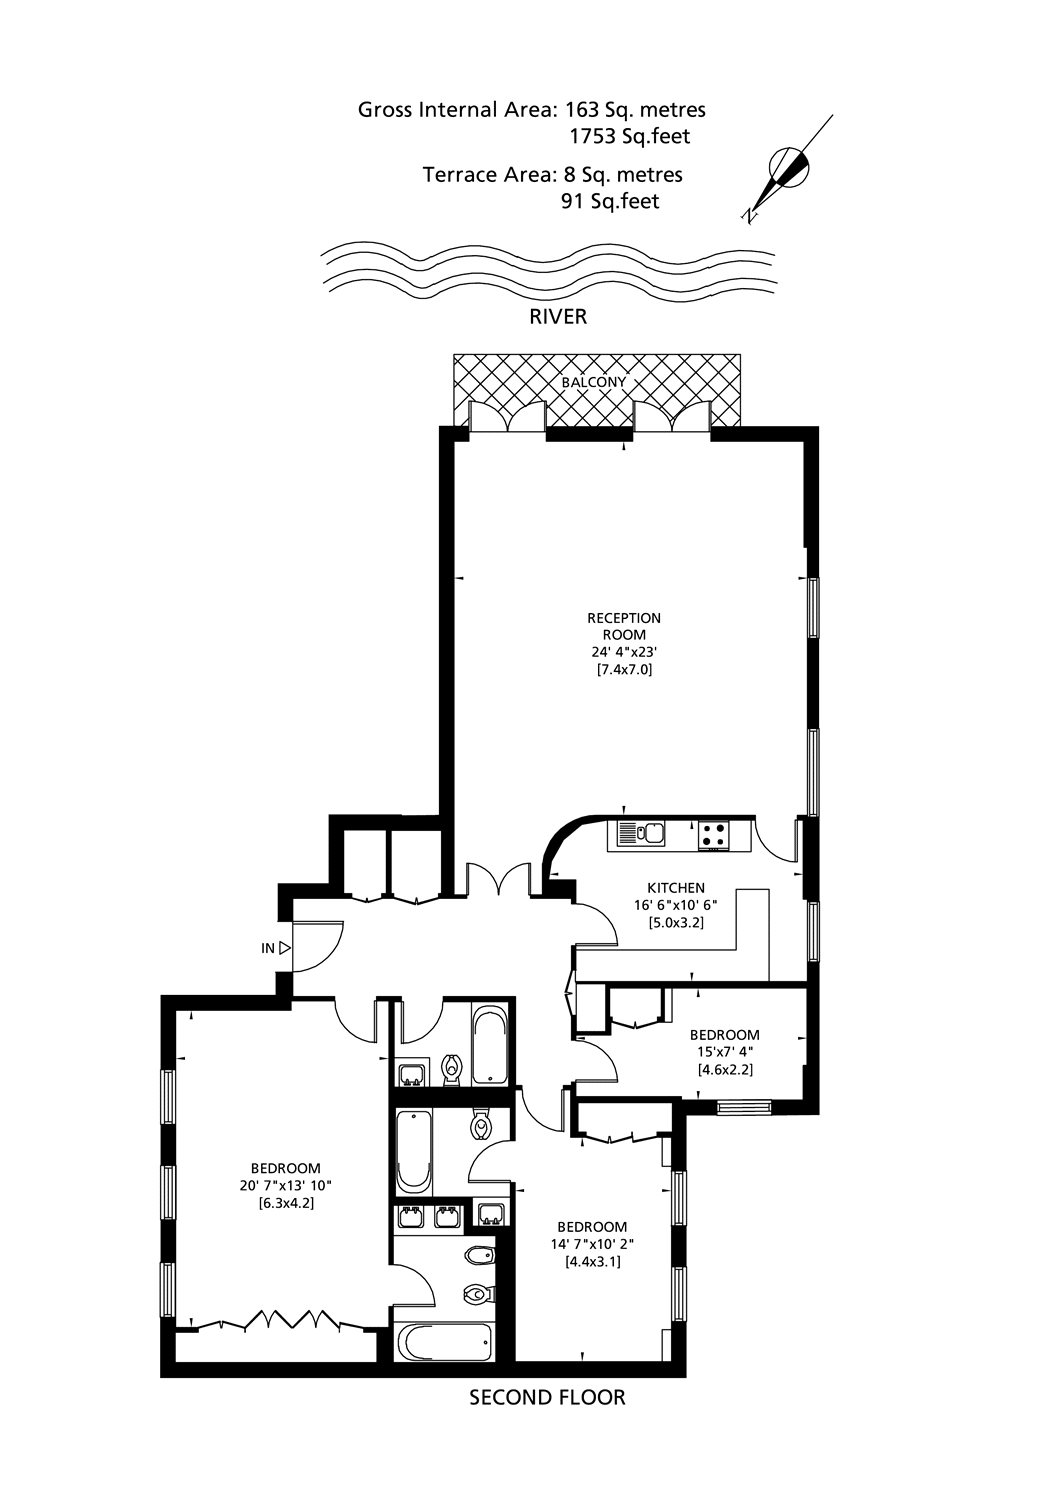 Photo westminster palace floor plan images 100 floor for 100 floor level 61